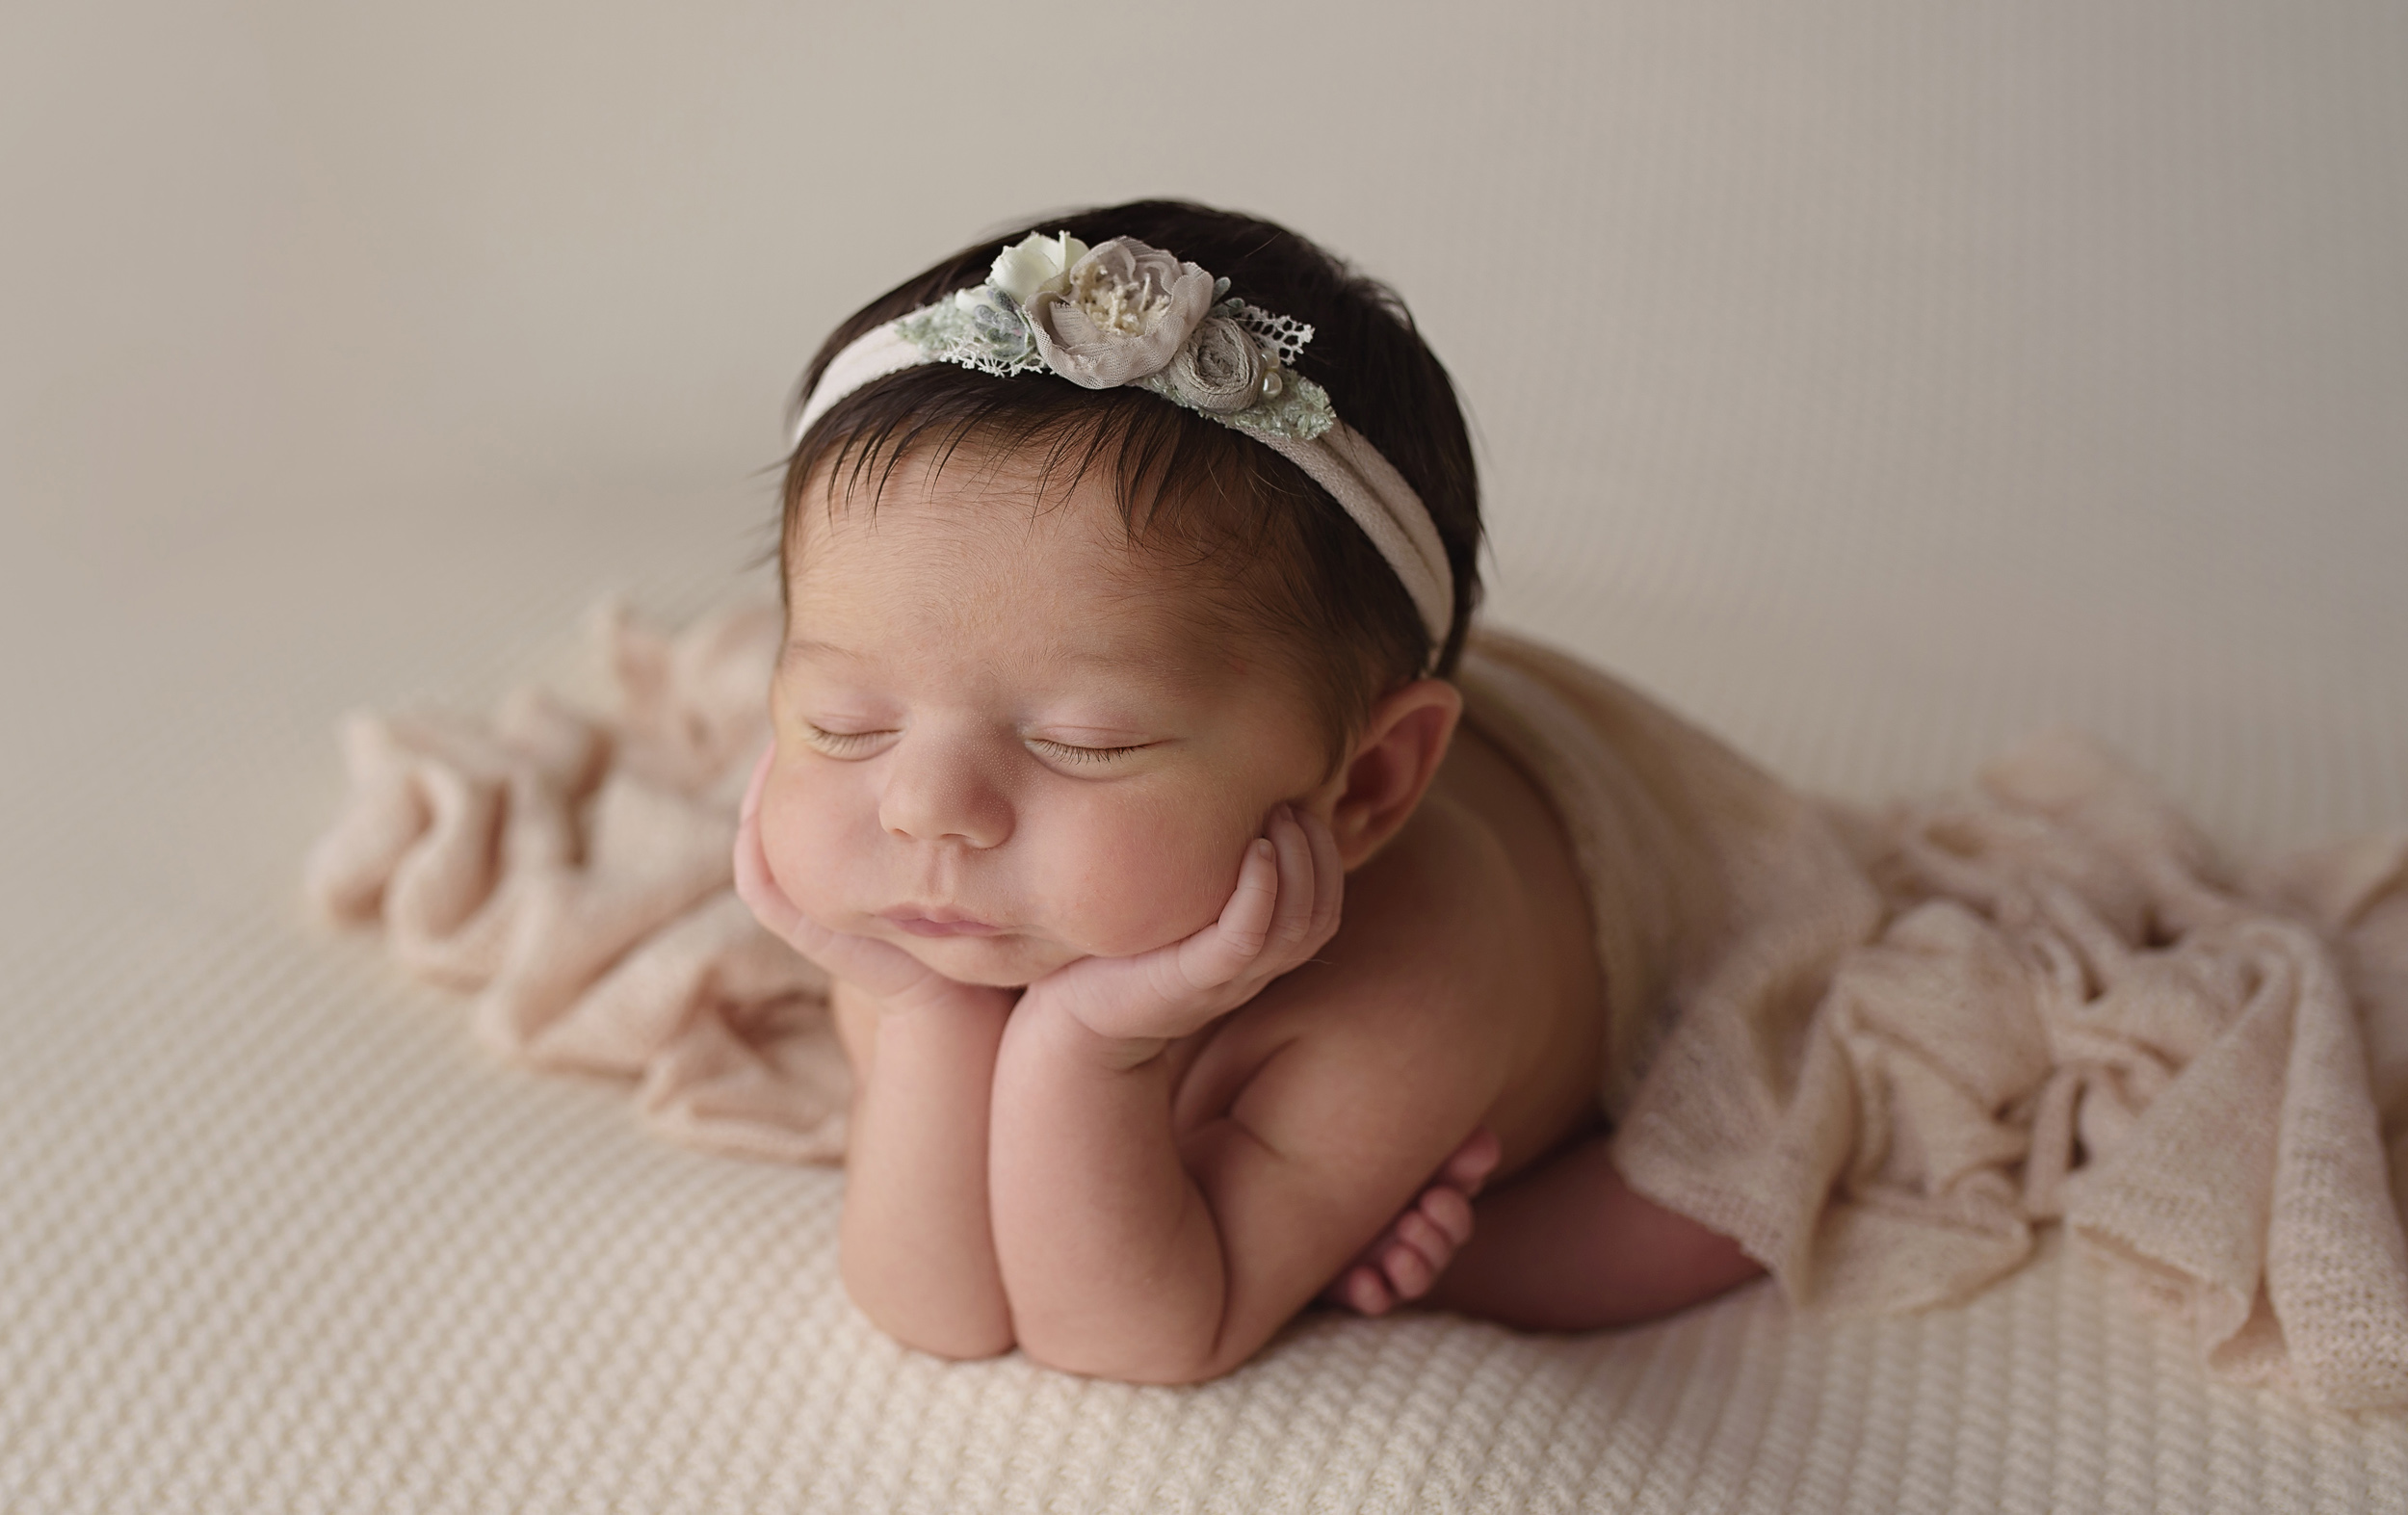 baby-photographer-newborn-photography-infant-photos-wellington-lake-worth-palm-beach-jupiter-tequesta-boynton-beach-delray-beach-boca-raton-parkland-captured-moments-by-dawn.jpg